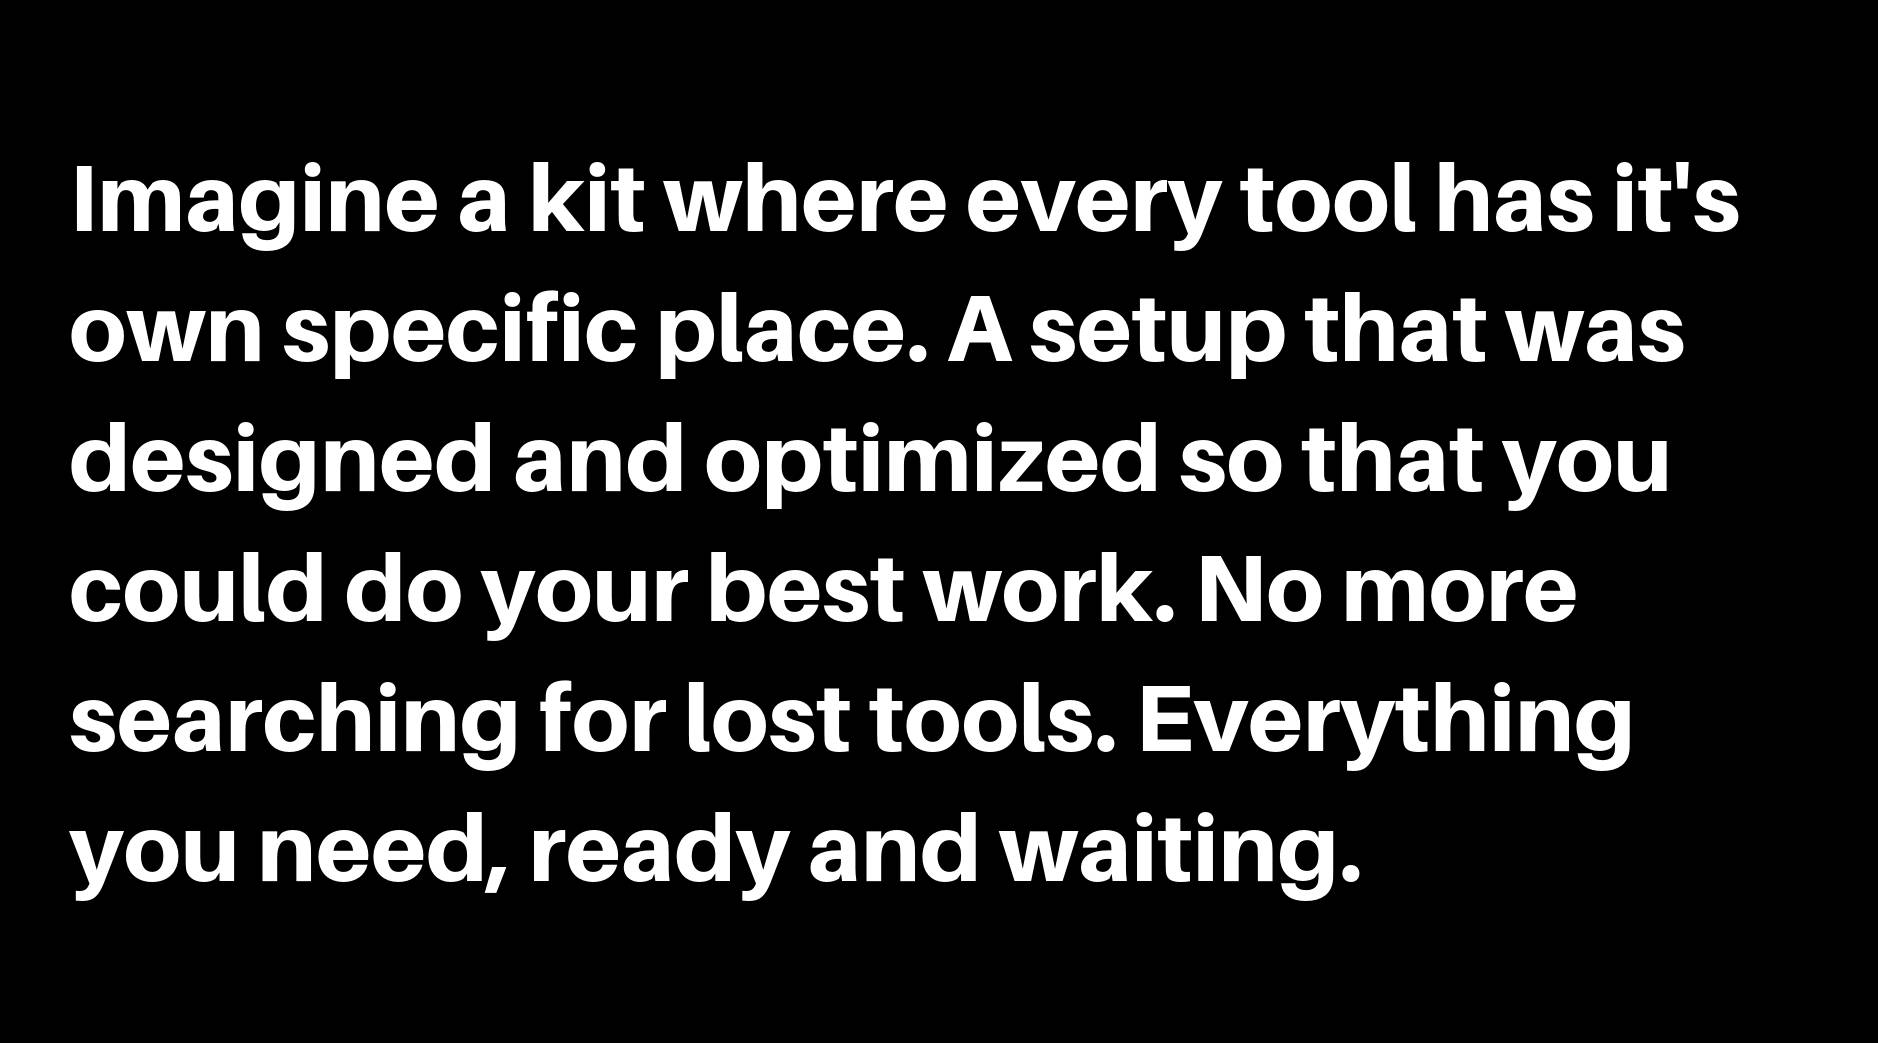 Imagine a kit where every tool has it's own specific place. A setup that was designed and optimized so that you could do your best work. No more searching for lost tools. Everything you need, ready and waiting.